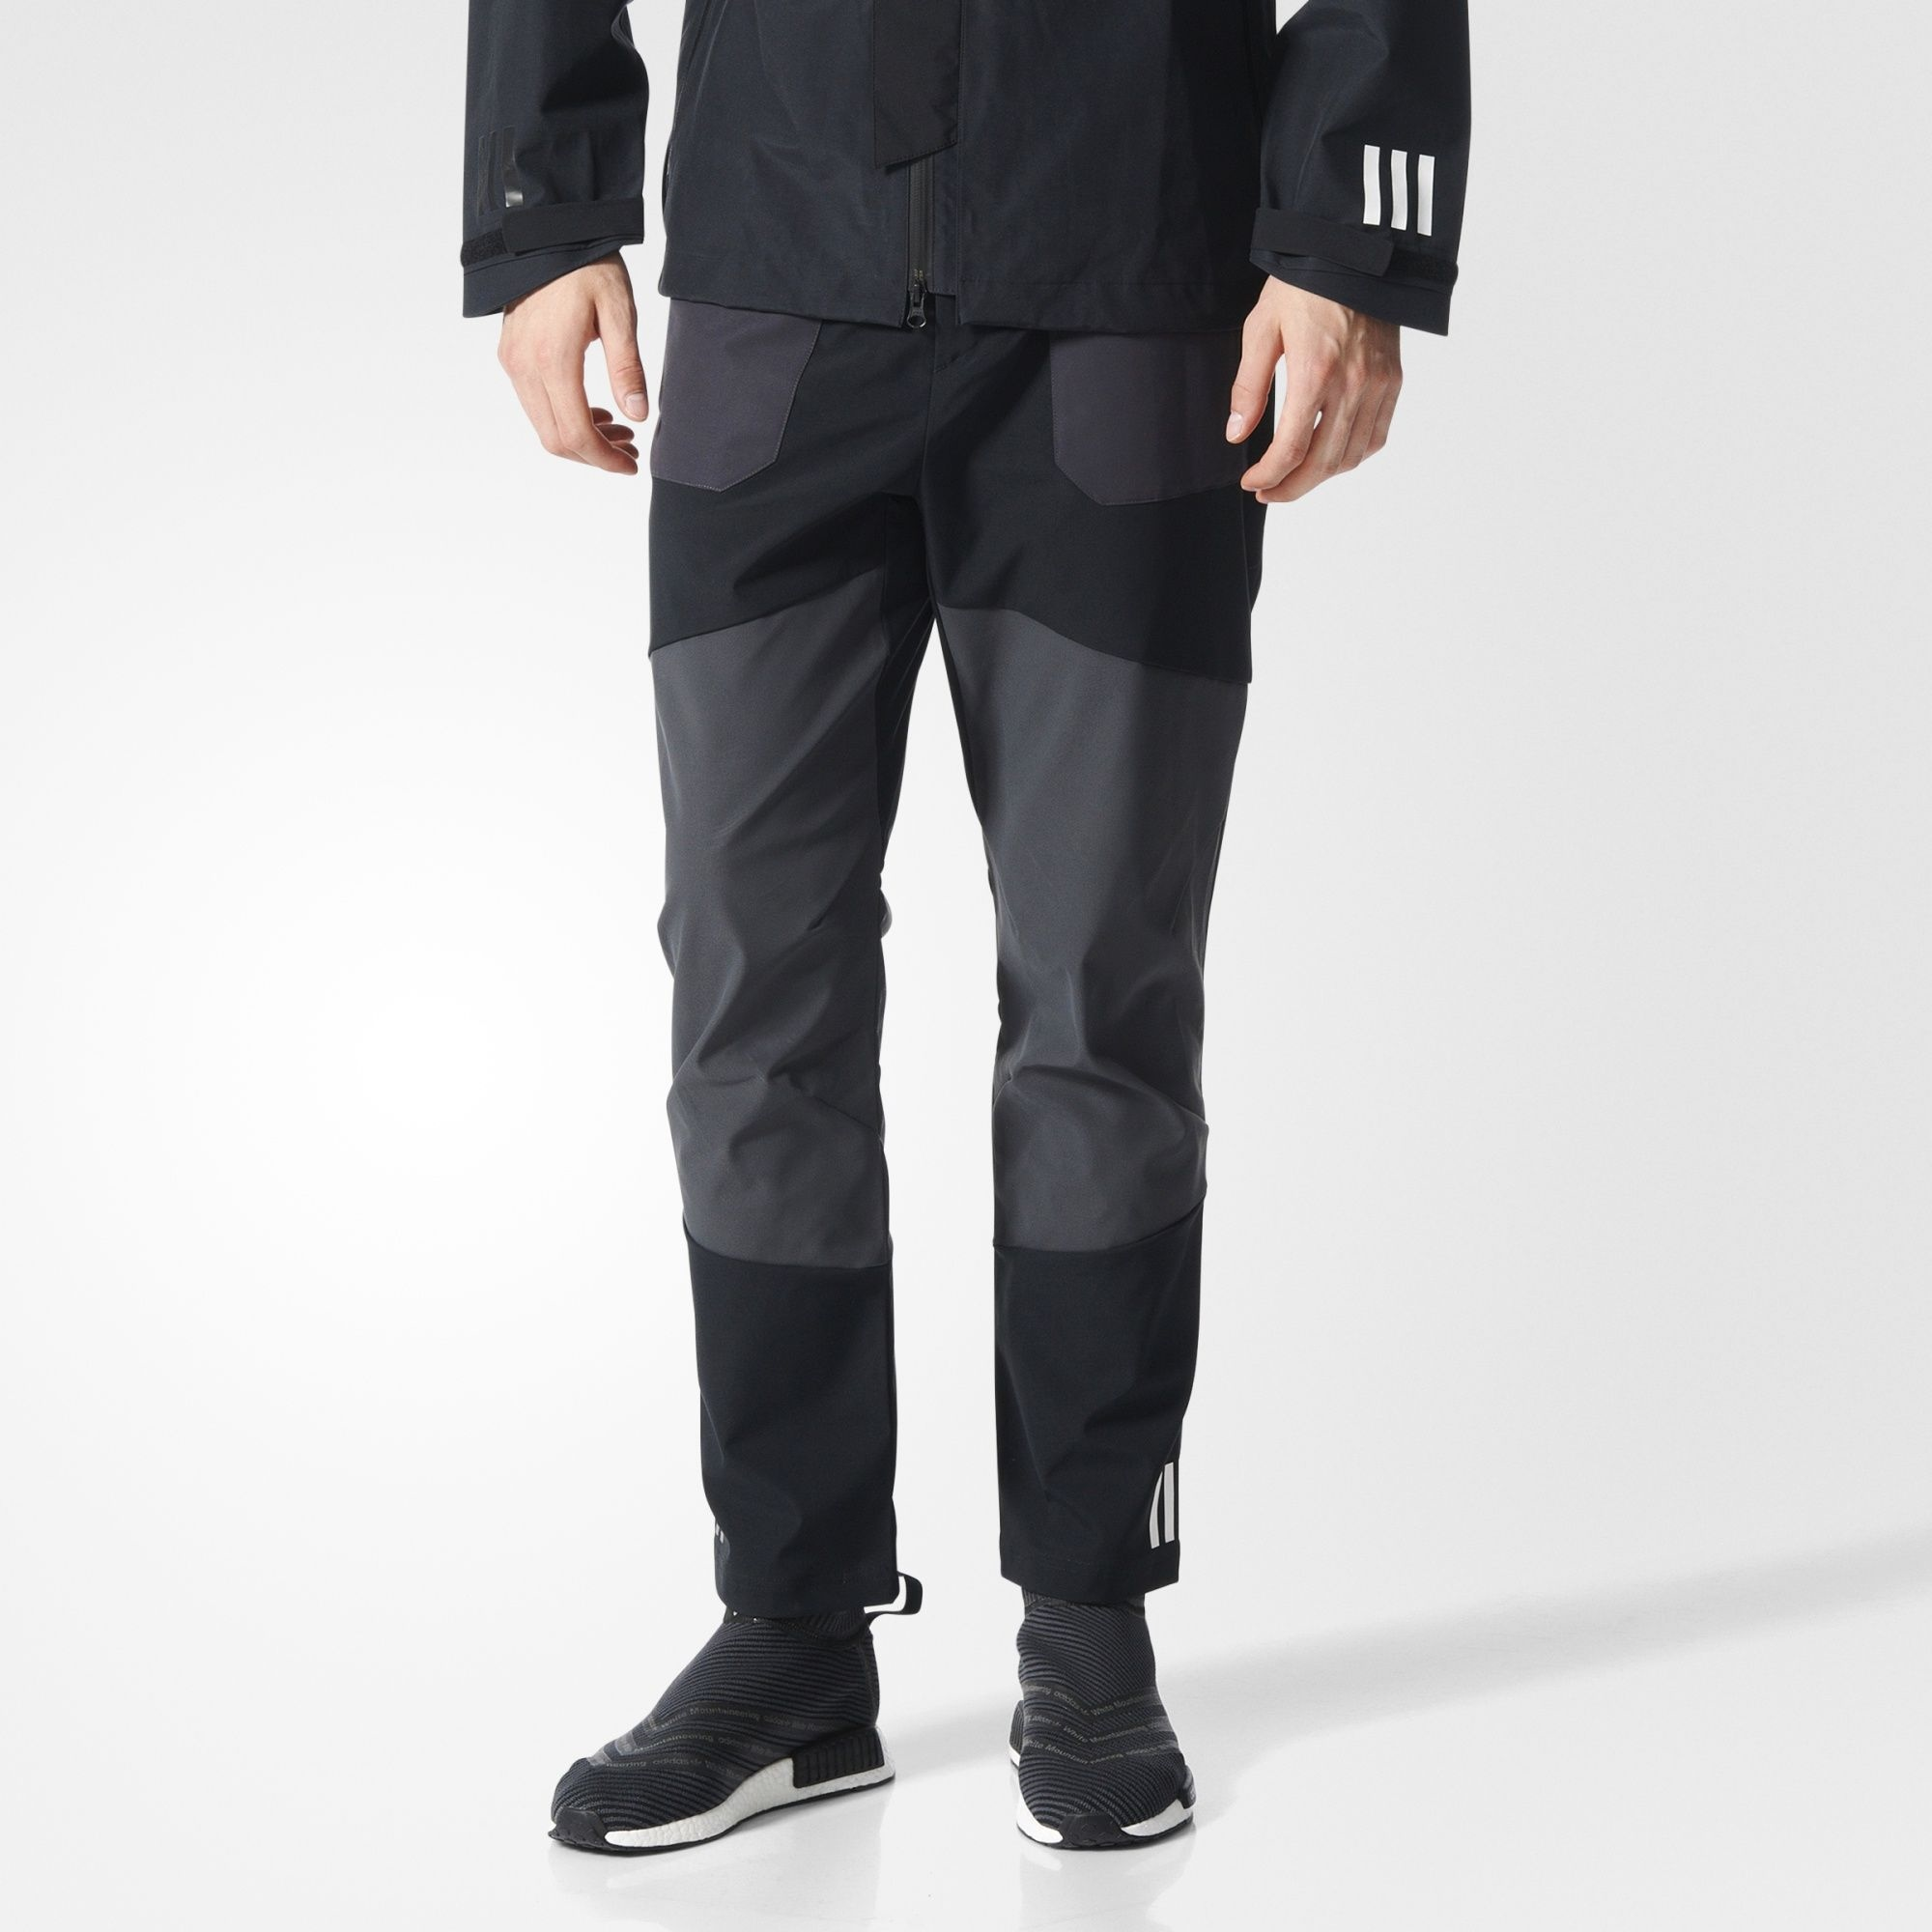 3da1d530b36e Details about adidas x White Mountaineering Mens Climbing Pants Trousers